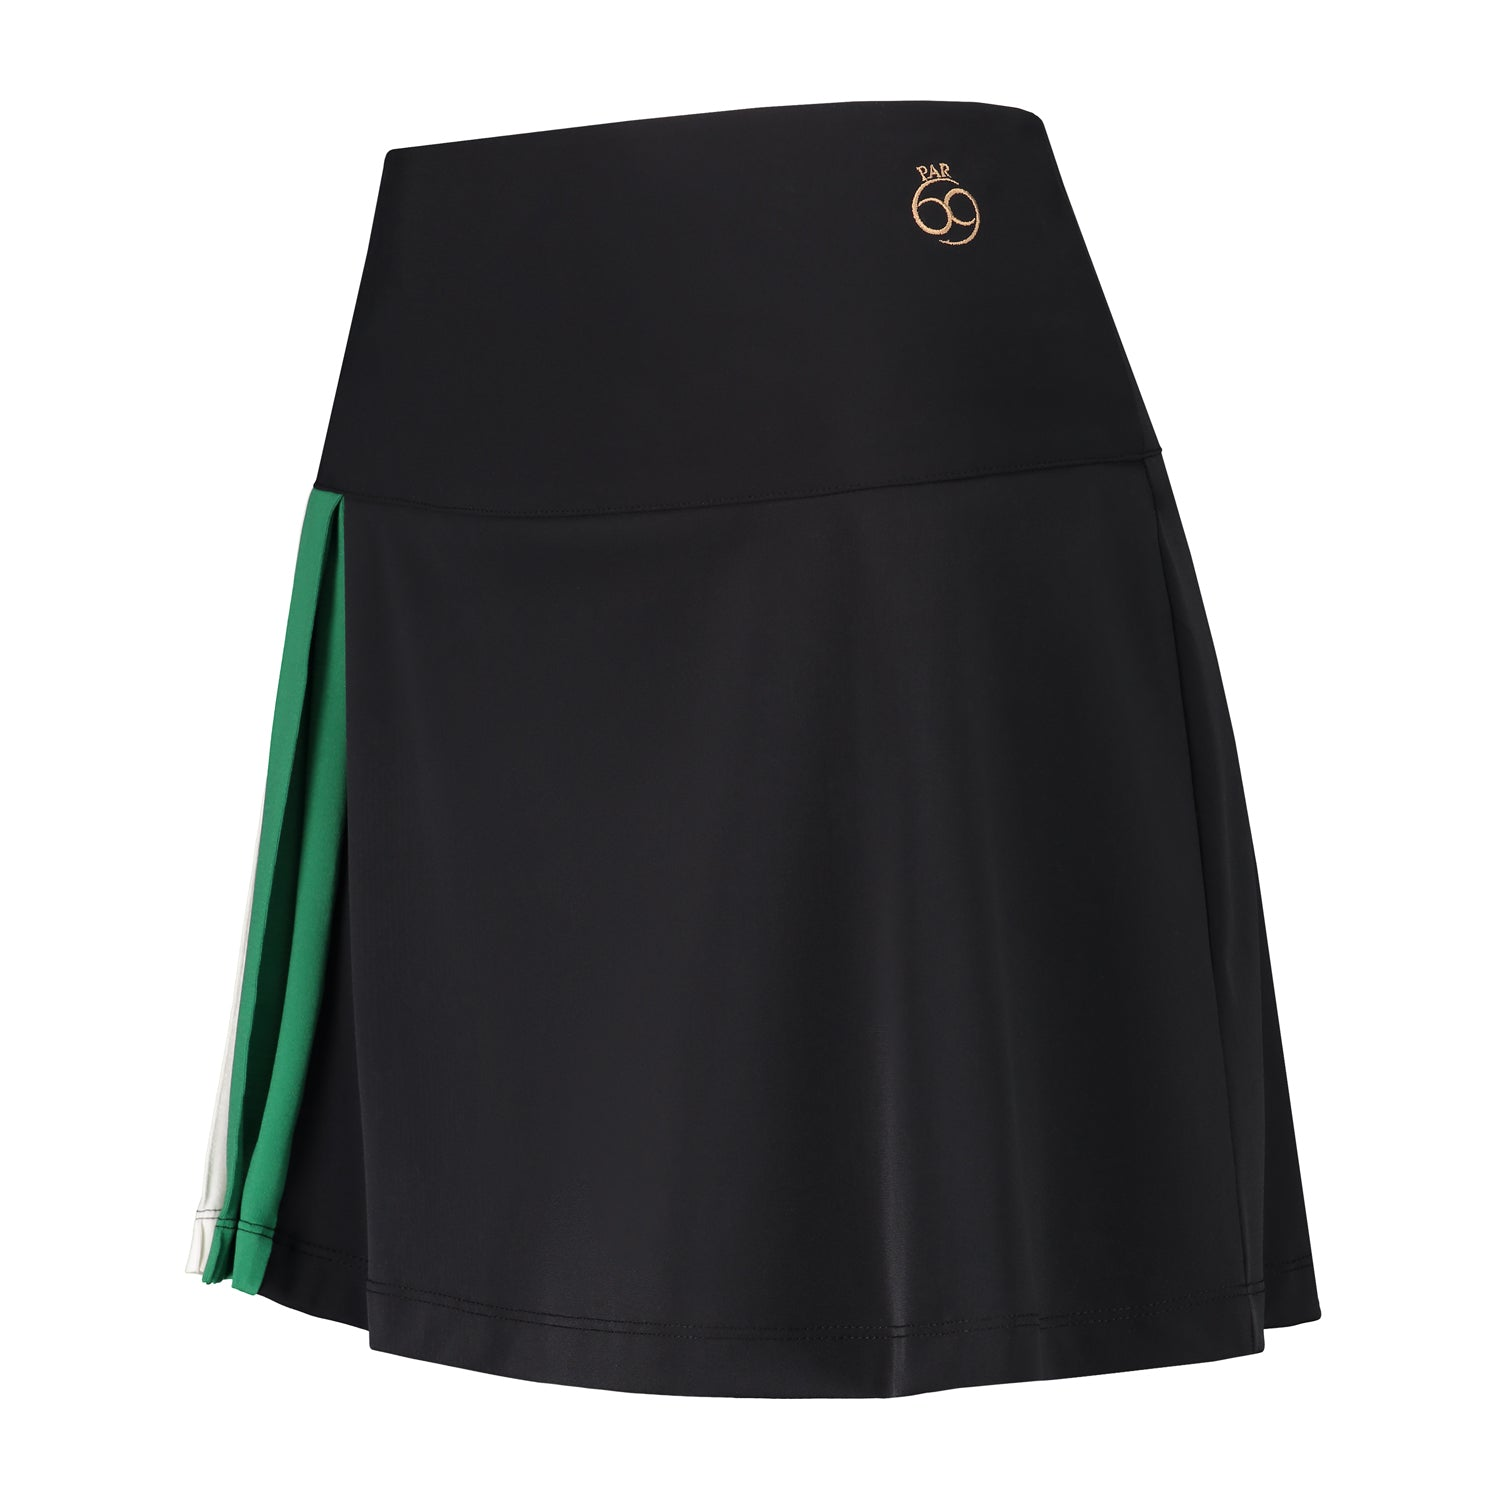 Blair Skirt in black with green